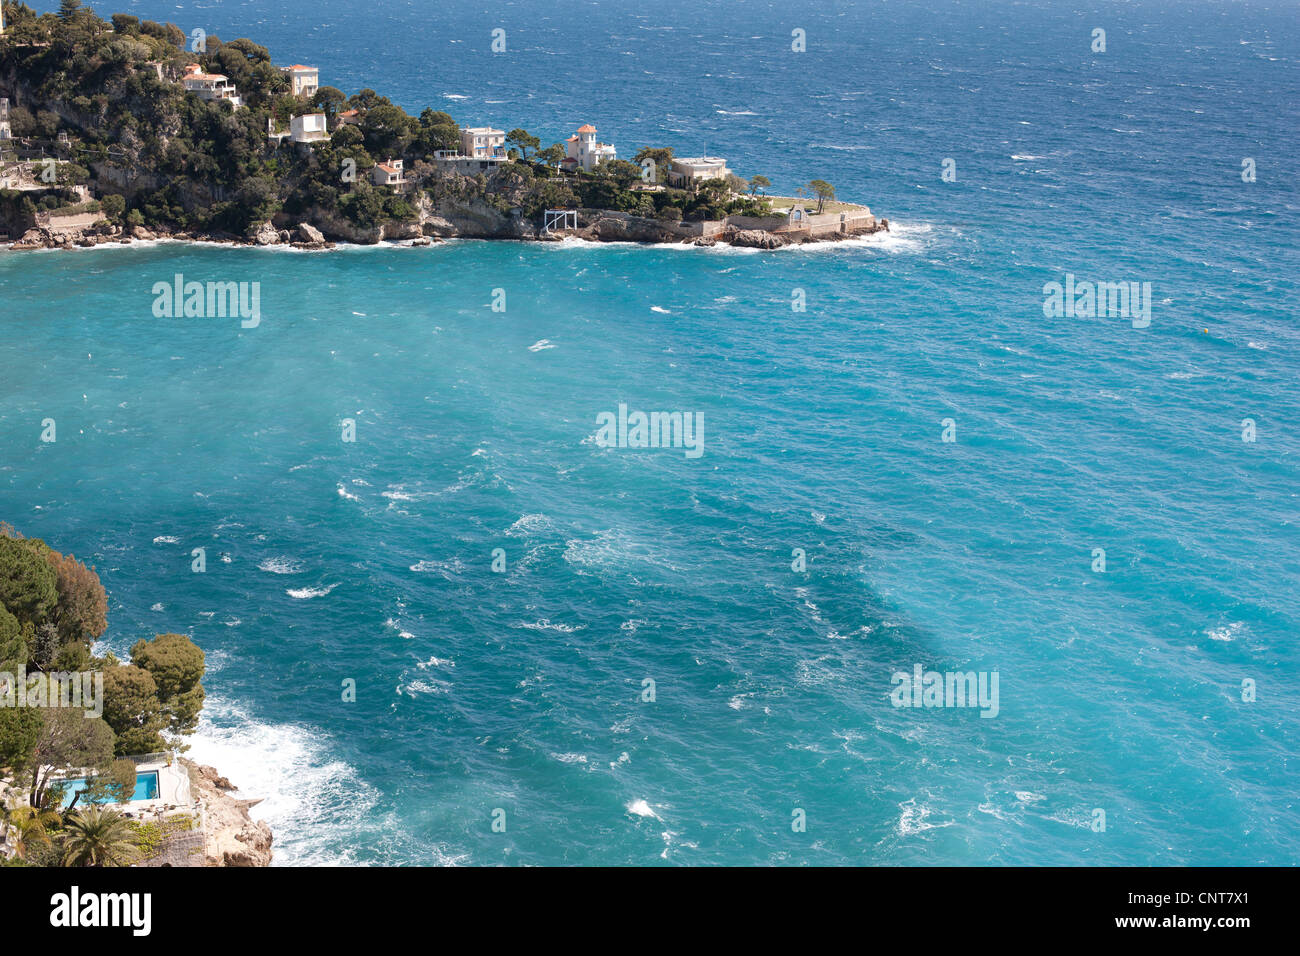 MALA CAPE Rocky promontory with luxurious villas on the azure mediterranean's coastline, French Riviera, France. - Stock Image